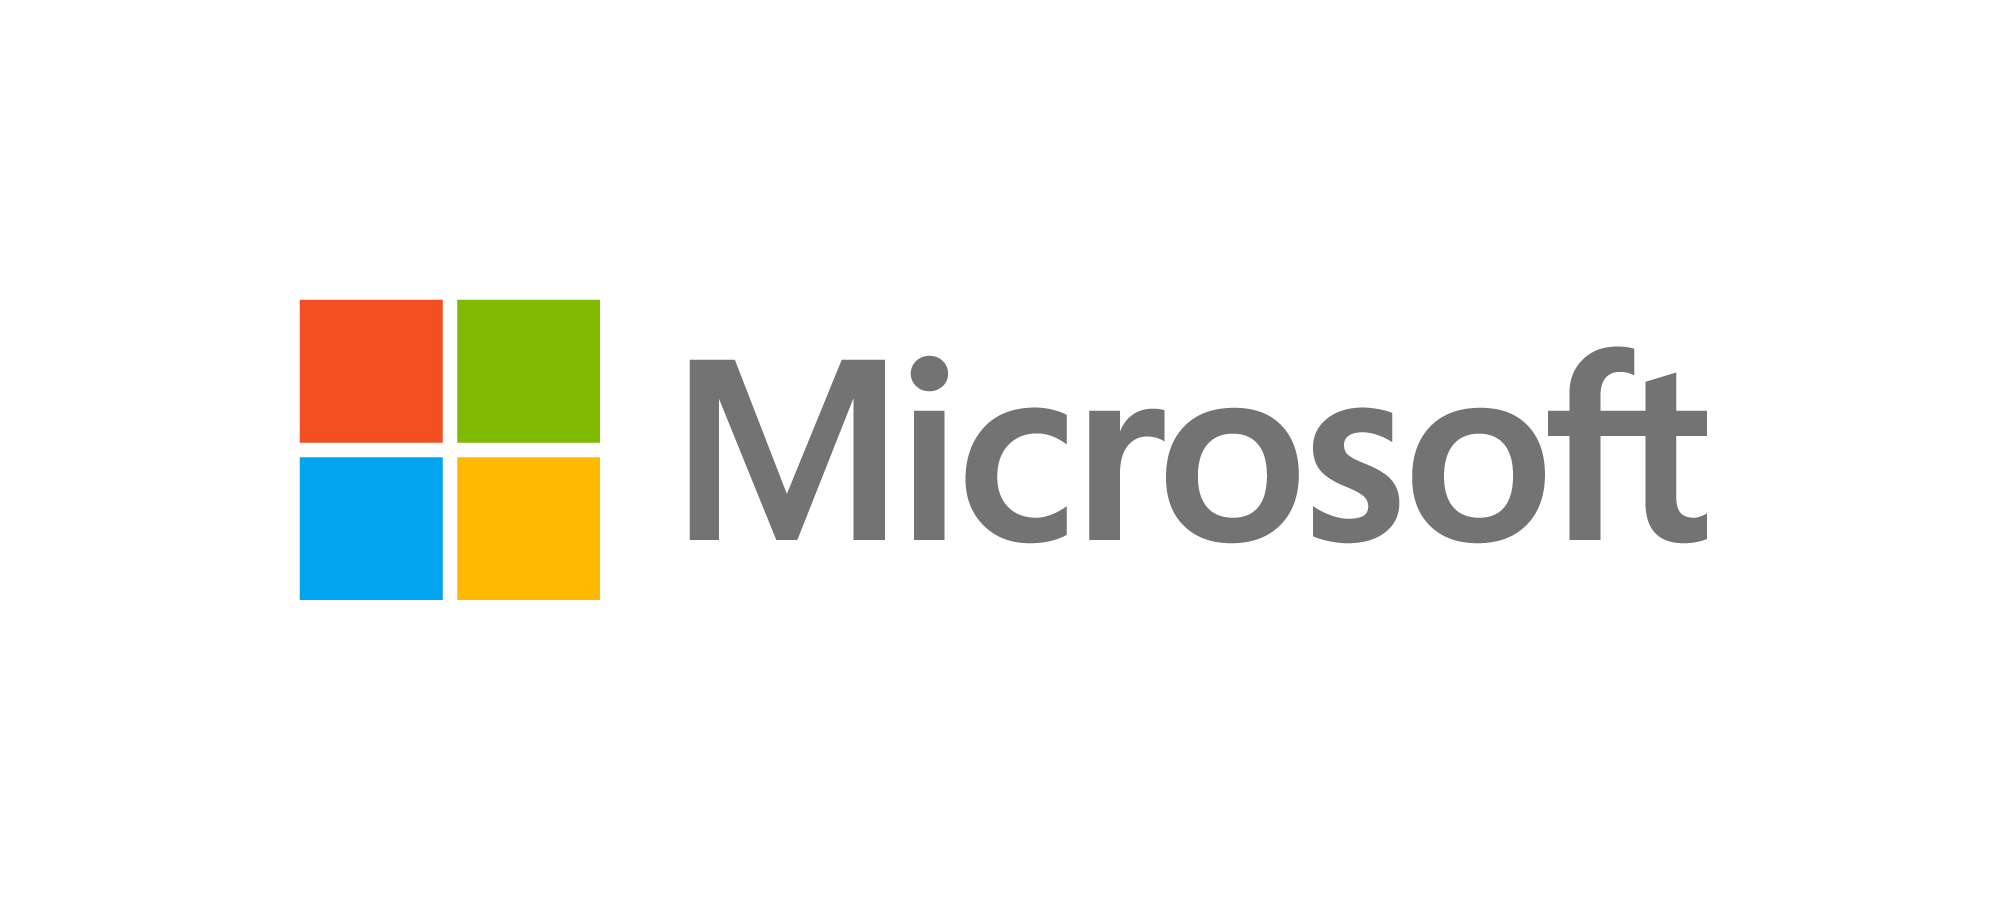 https://cdn.asp.events/CLIENT_CloserSt_D86EA381_5056_B739_5482D50A1A831DDD/sites/CEAHK-2020/media/libraries/speakers/Microsoft-logo_rgb_c-gray (2).png